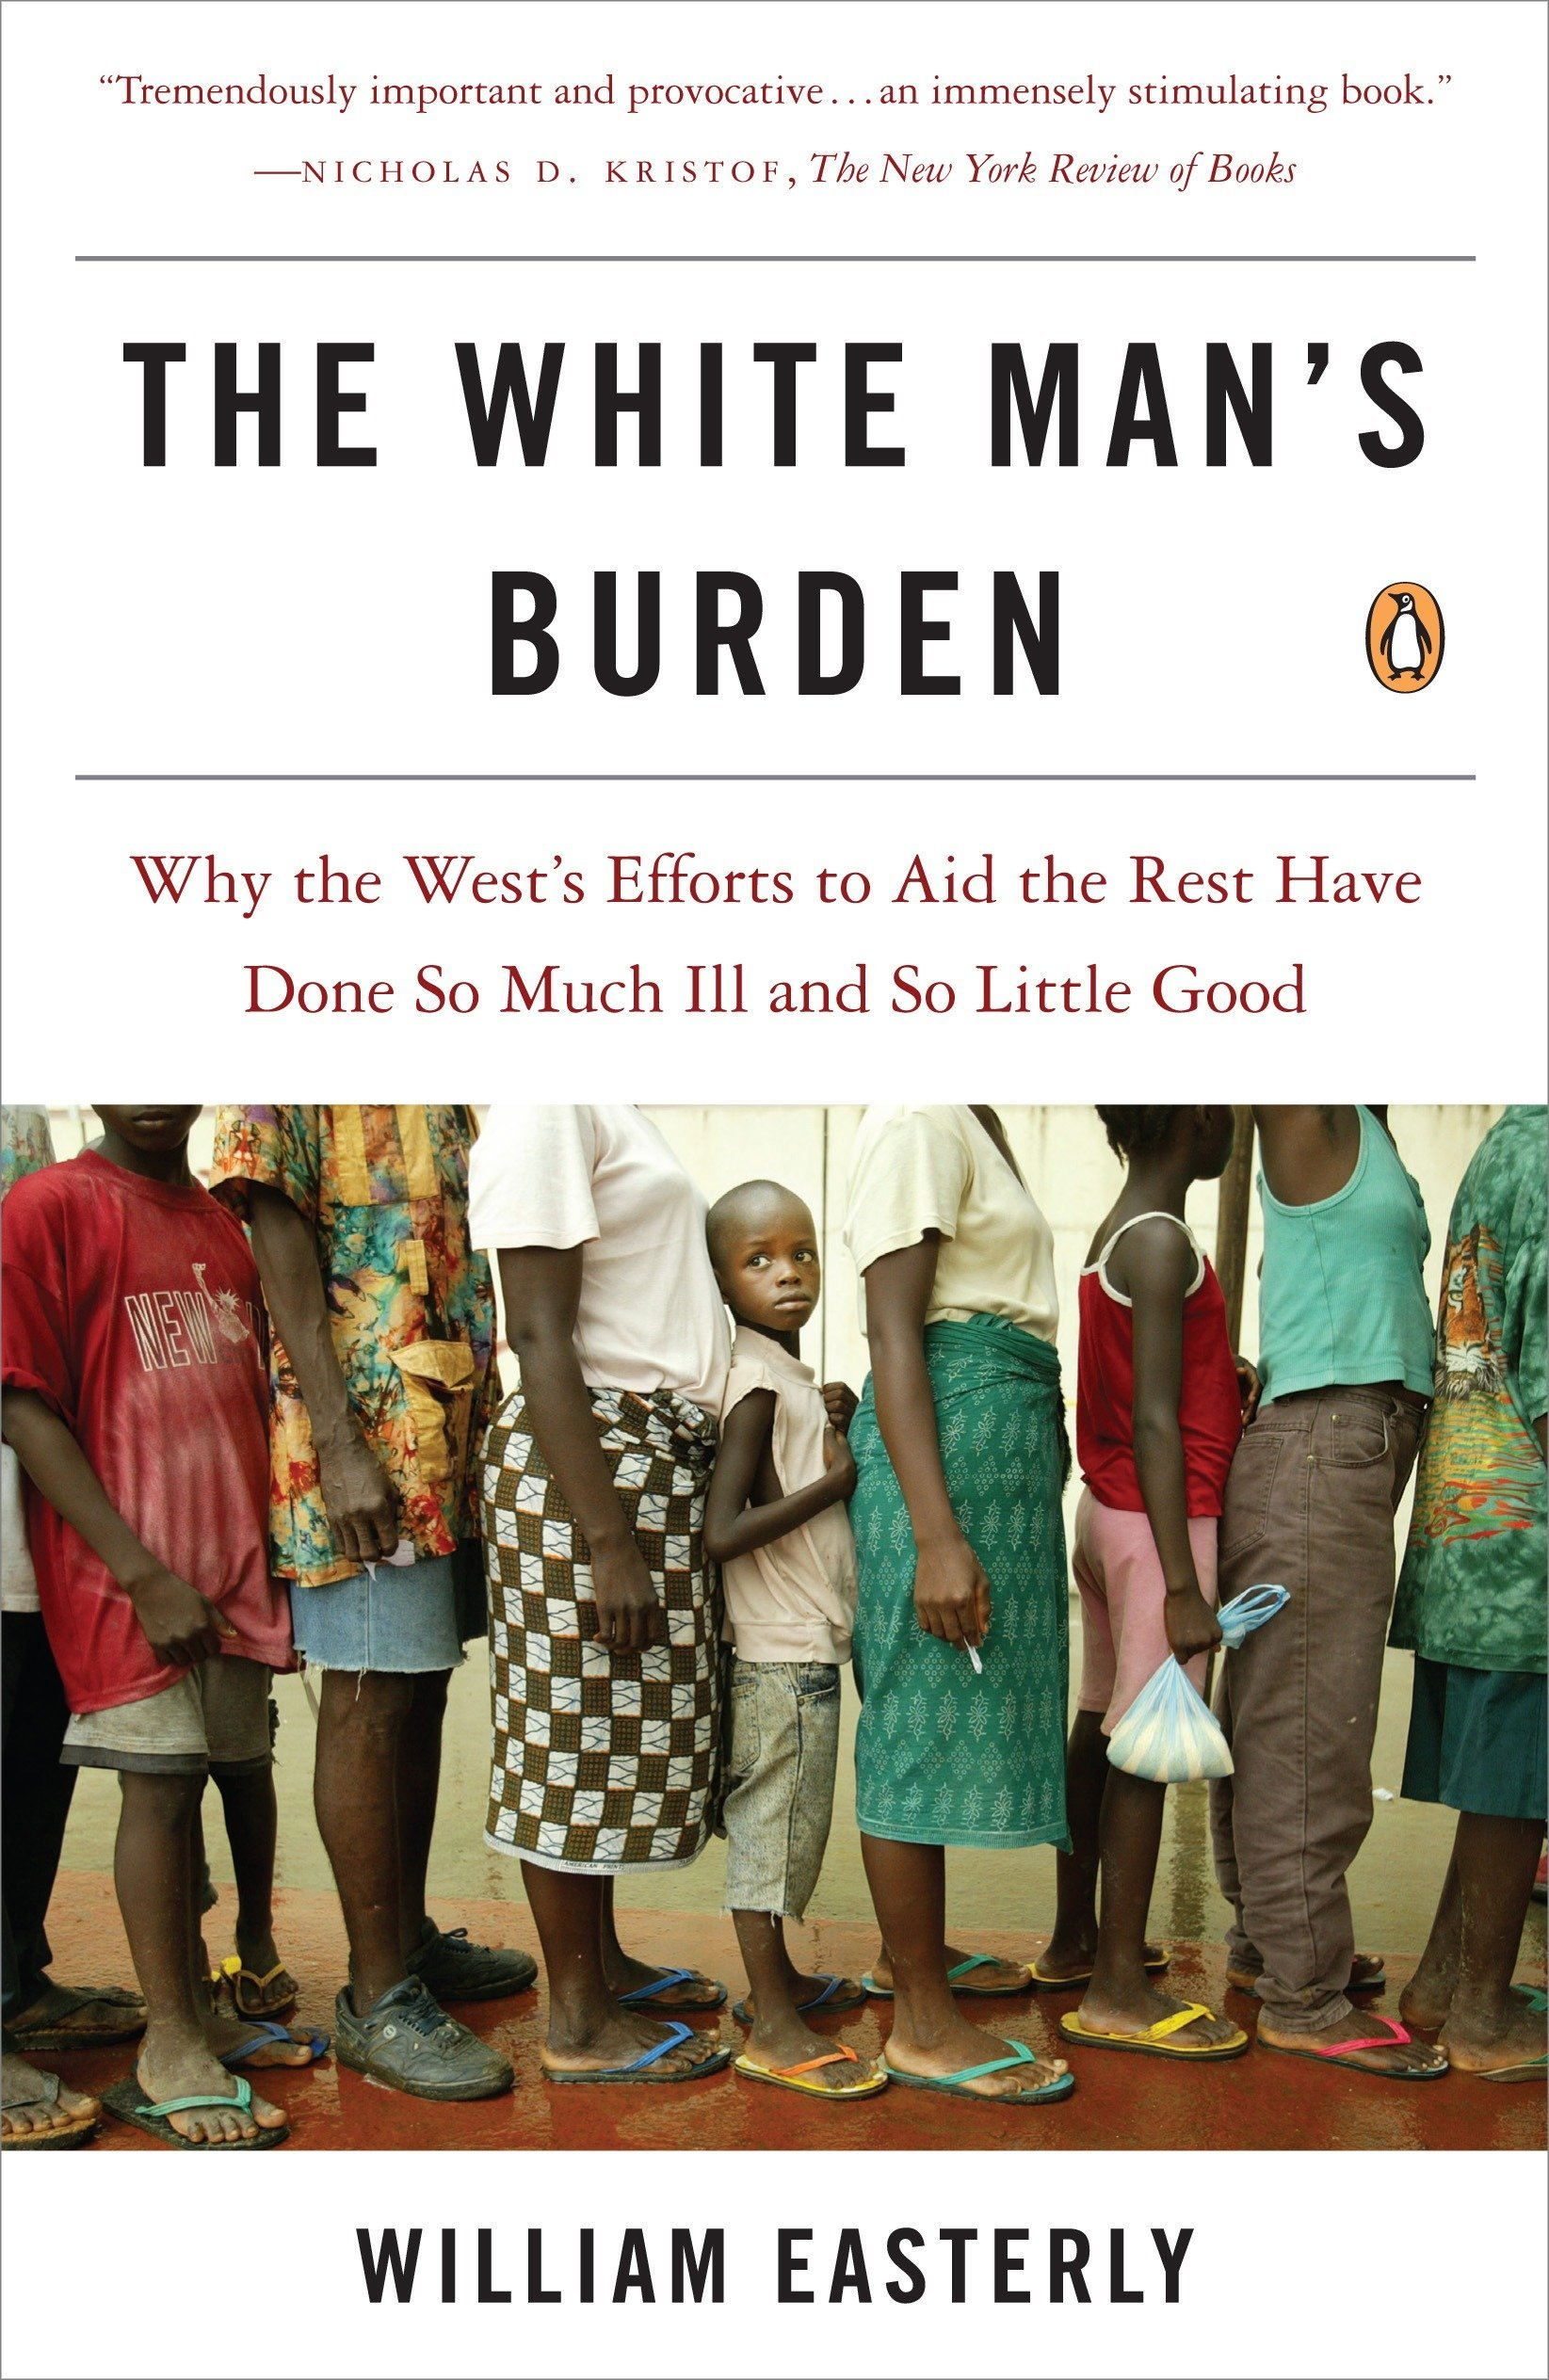 The White Man's Burden: Why the West's Efforts to Aid the Rest Have Done So Much Ill and So Little Good